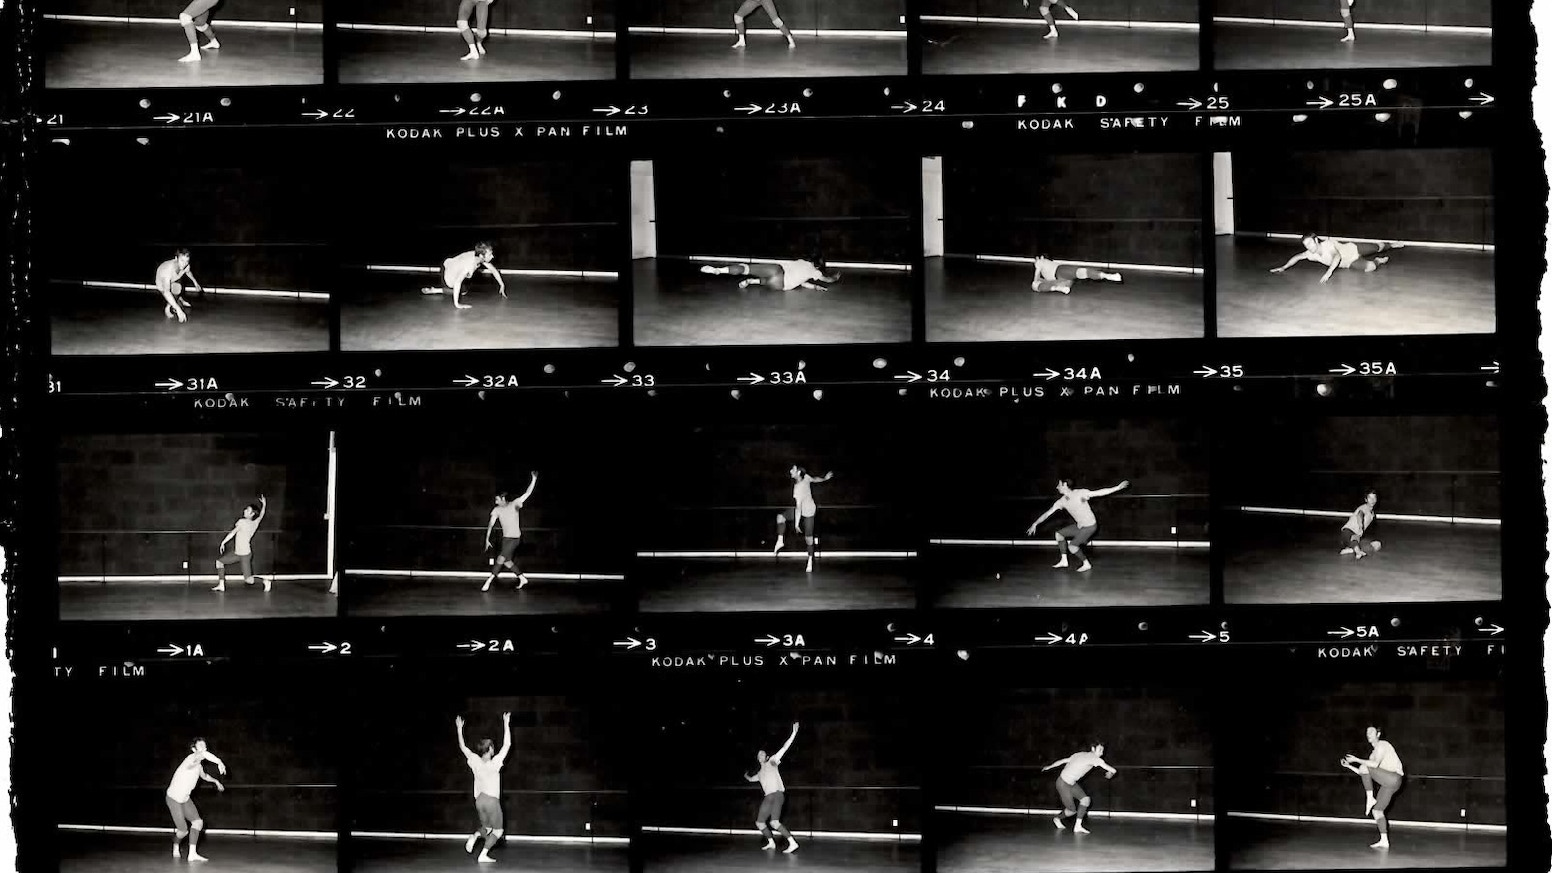 An archive that will change the history of dance on film, making nearly 60 years of ground breaking footage accessible.